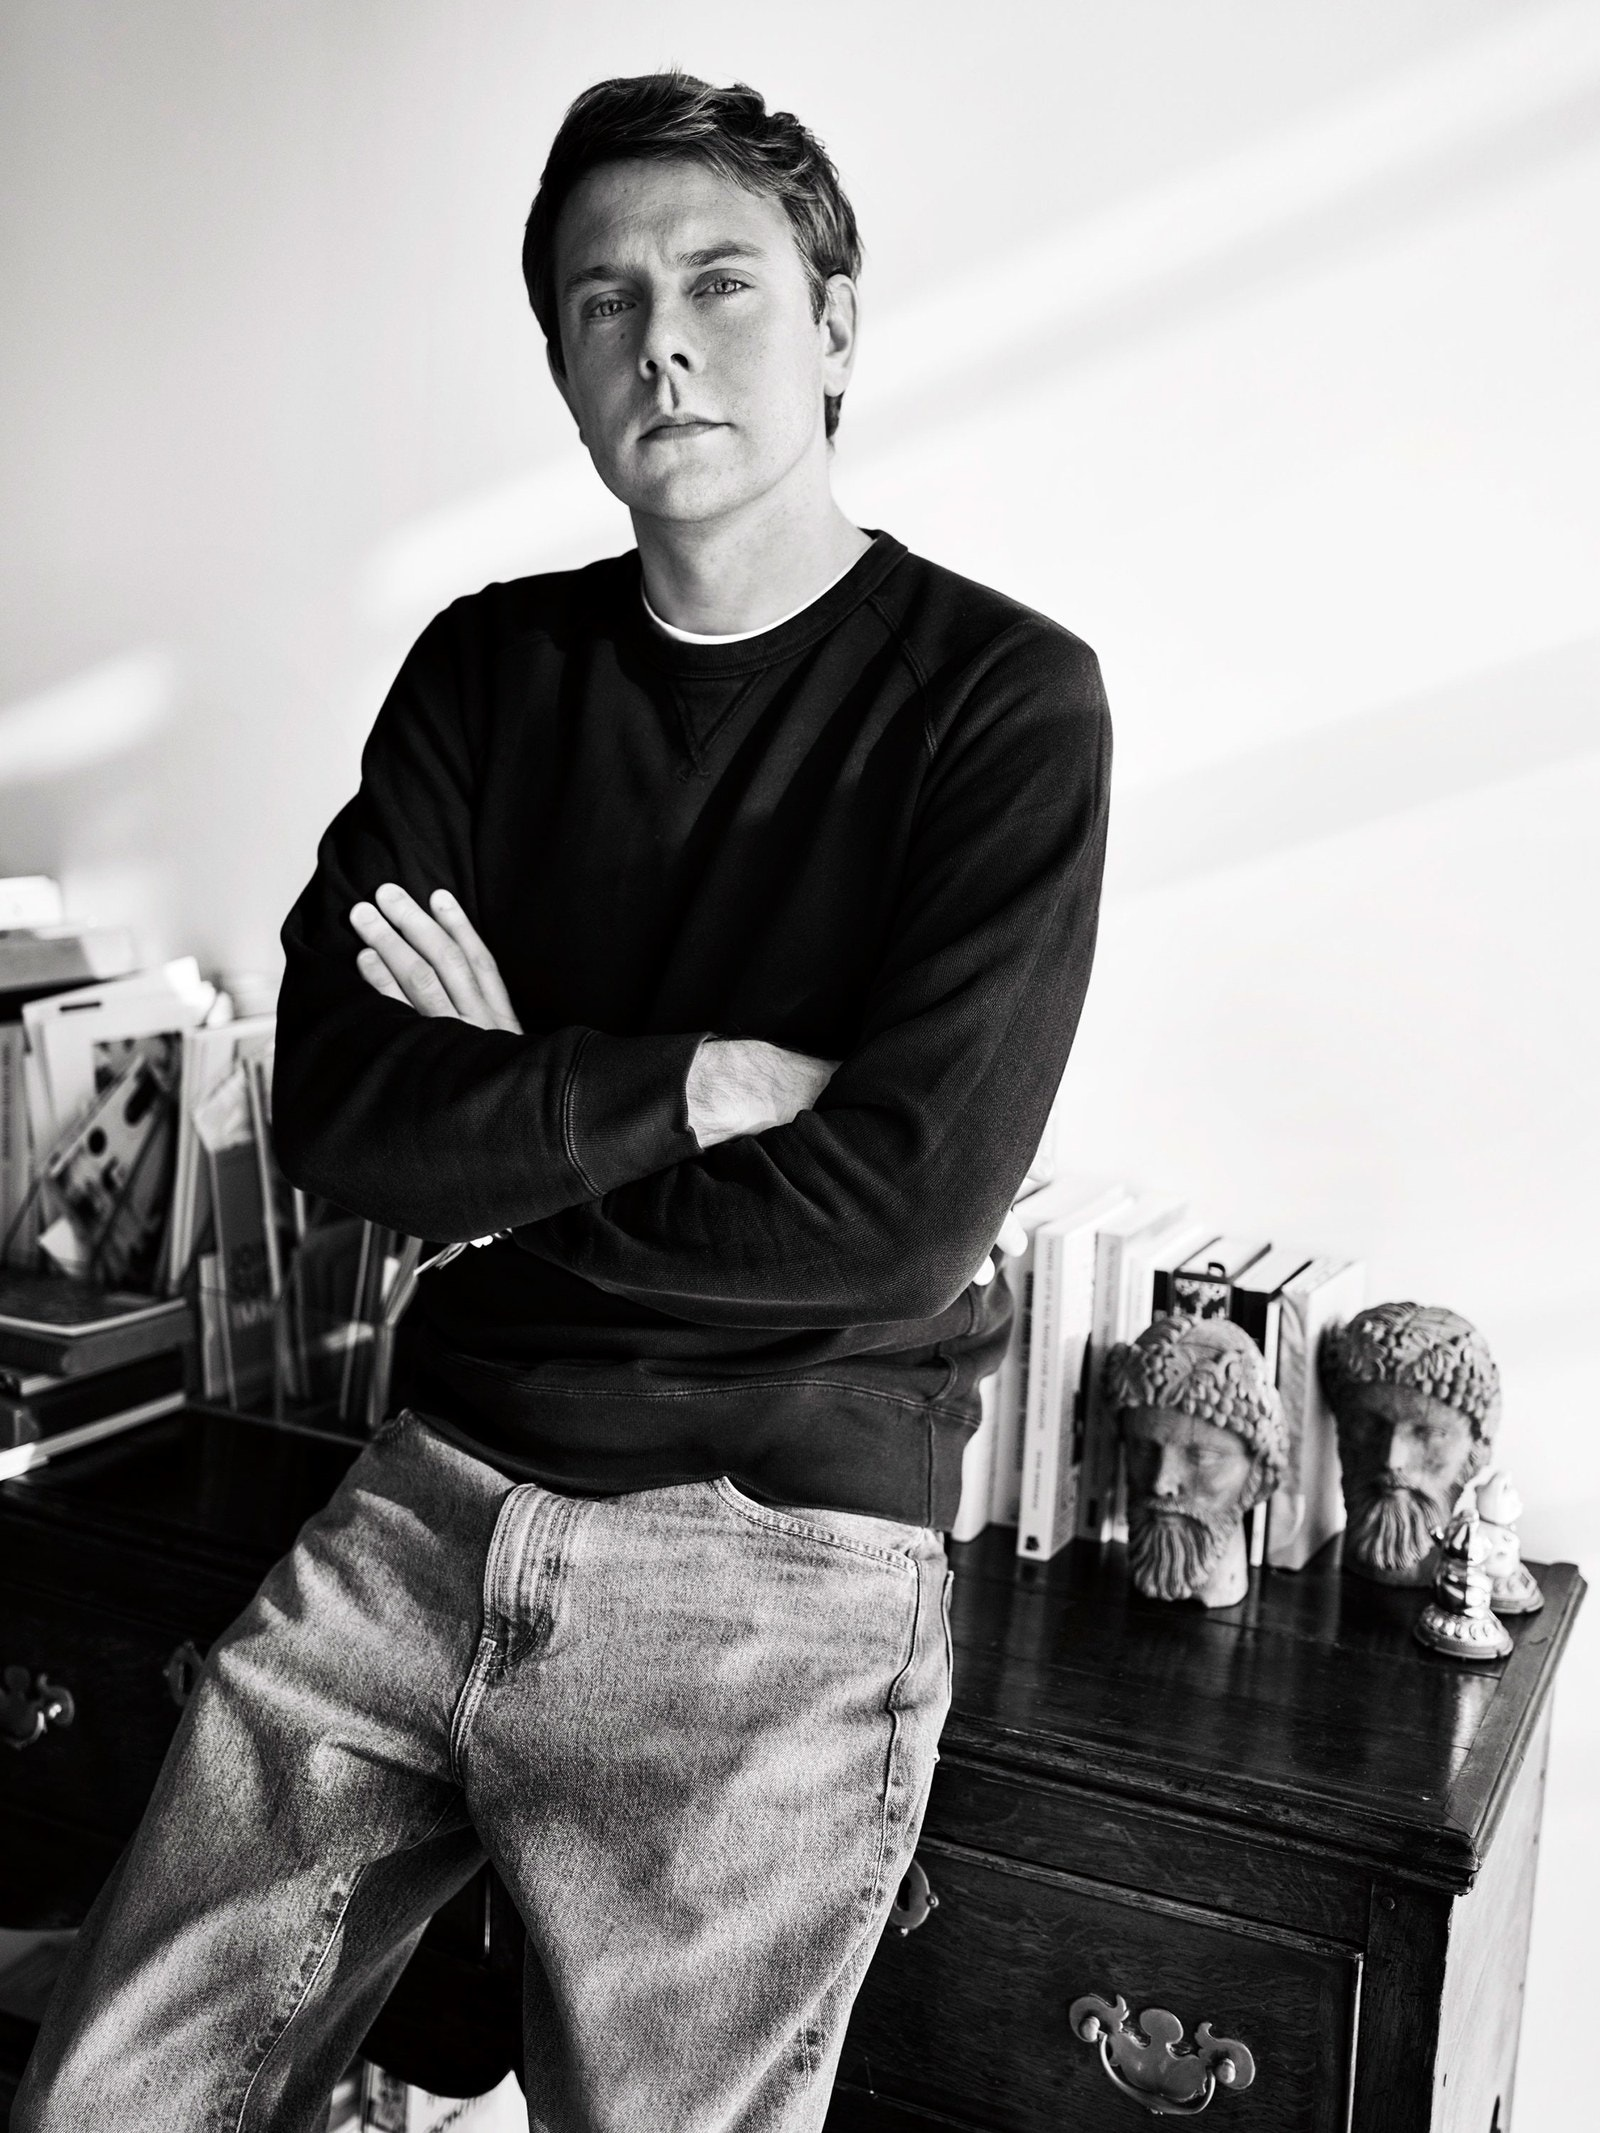 Moncler Genius Announces JW Anderson and Rimowa for 2020 News